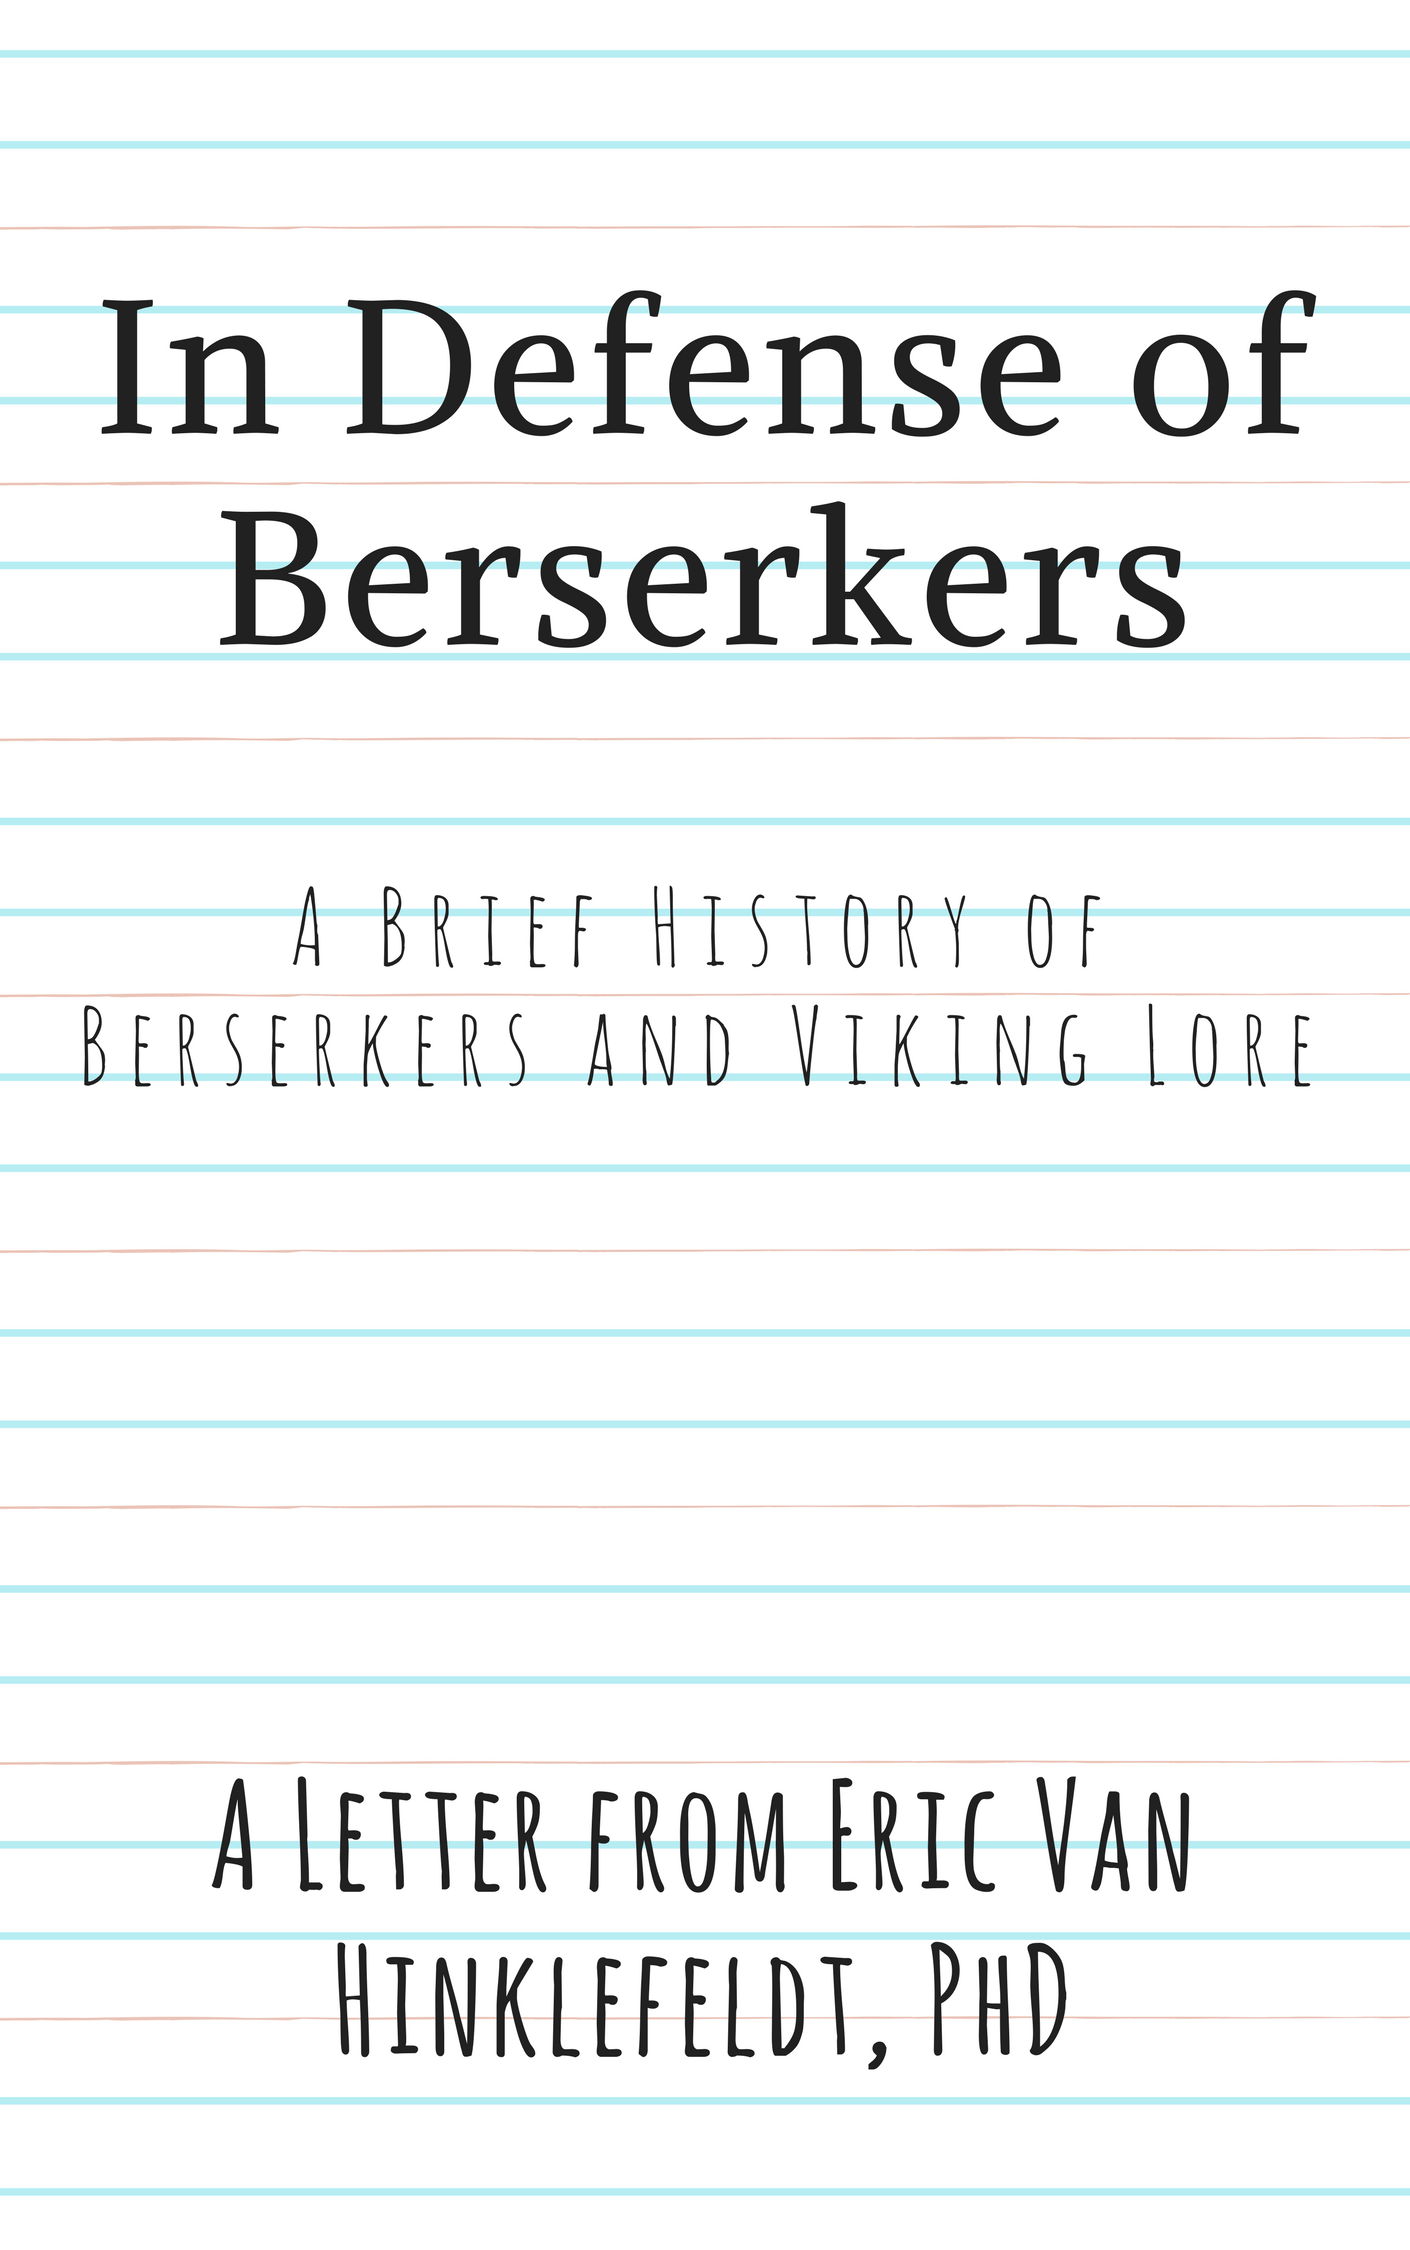 CANVA COVER - In Defense of  Berserkers.png